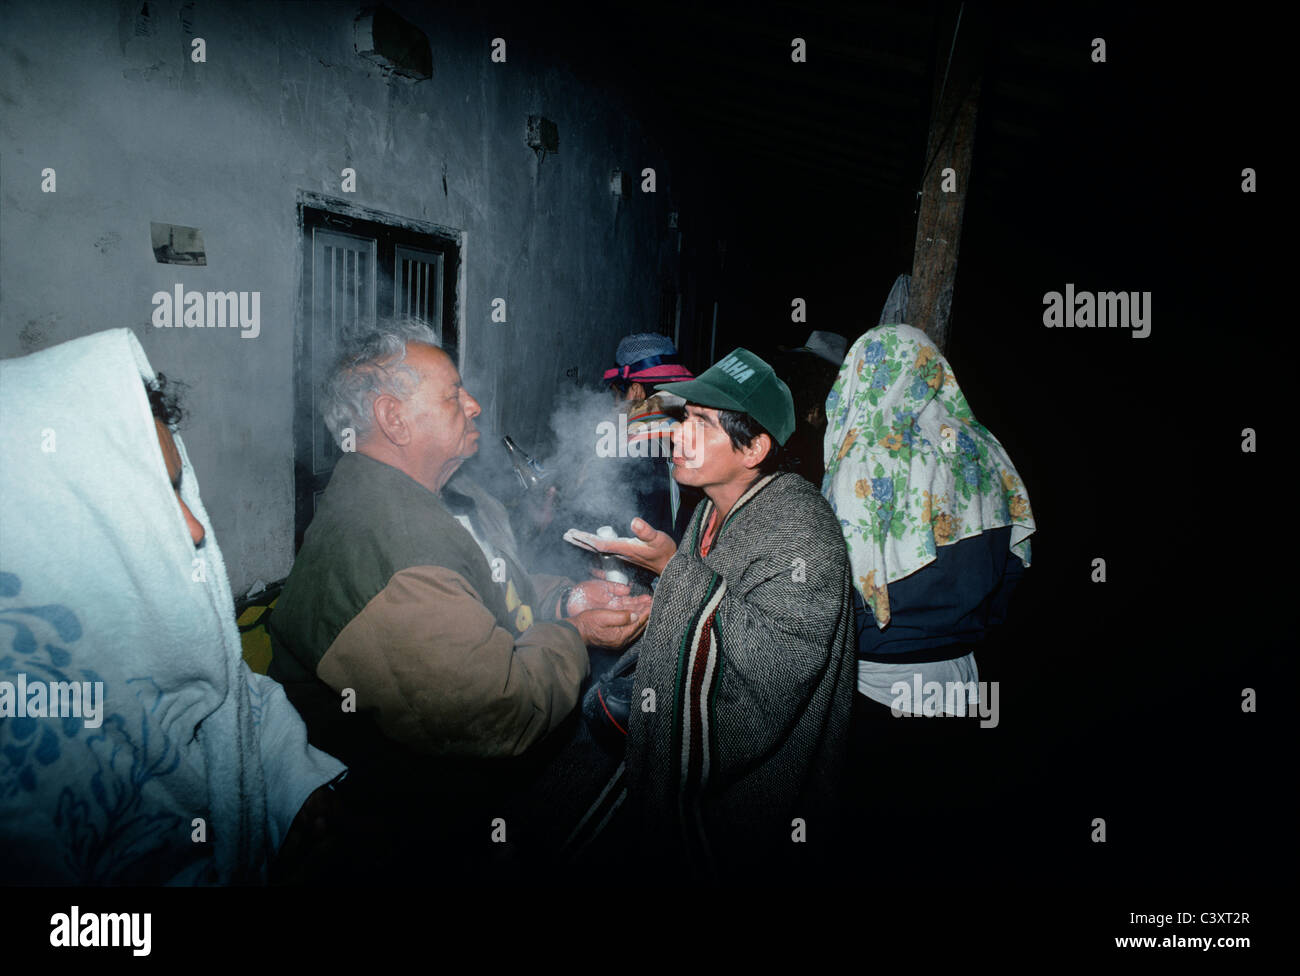 Peruvian folk healer (curandero) blowing a mystical white powder into the face of a man wishing for spiritual cleansing. - Stock Image